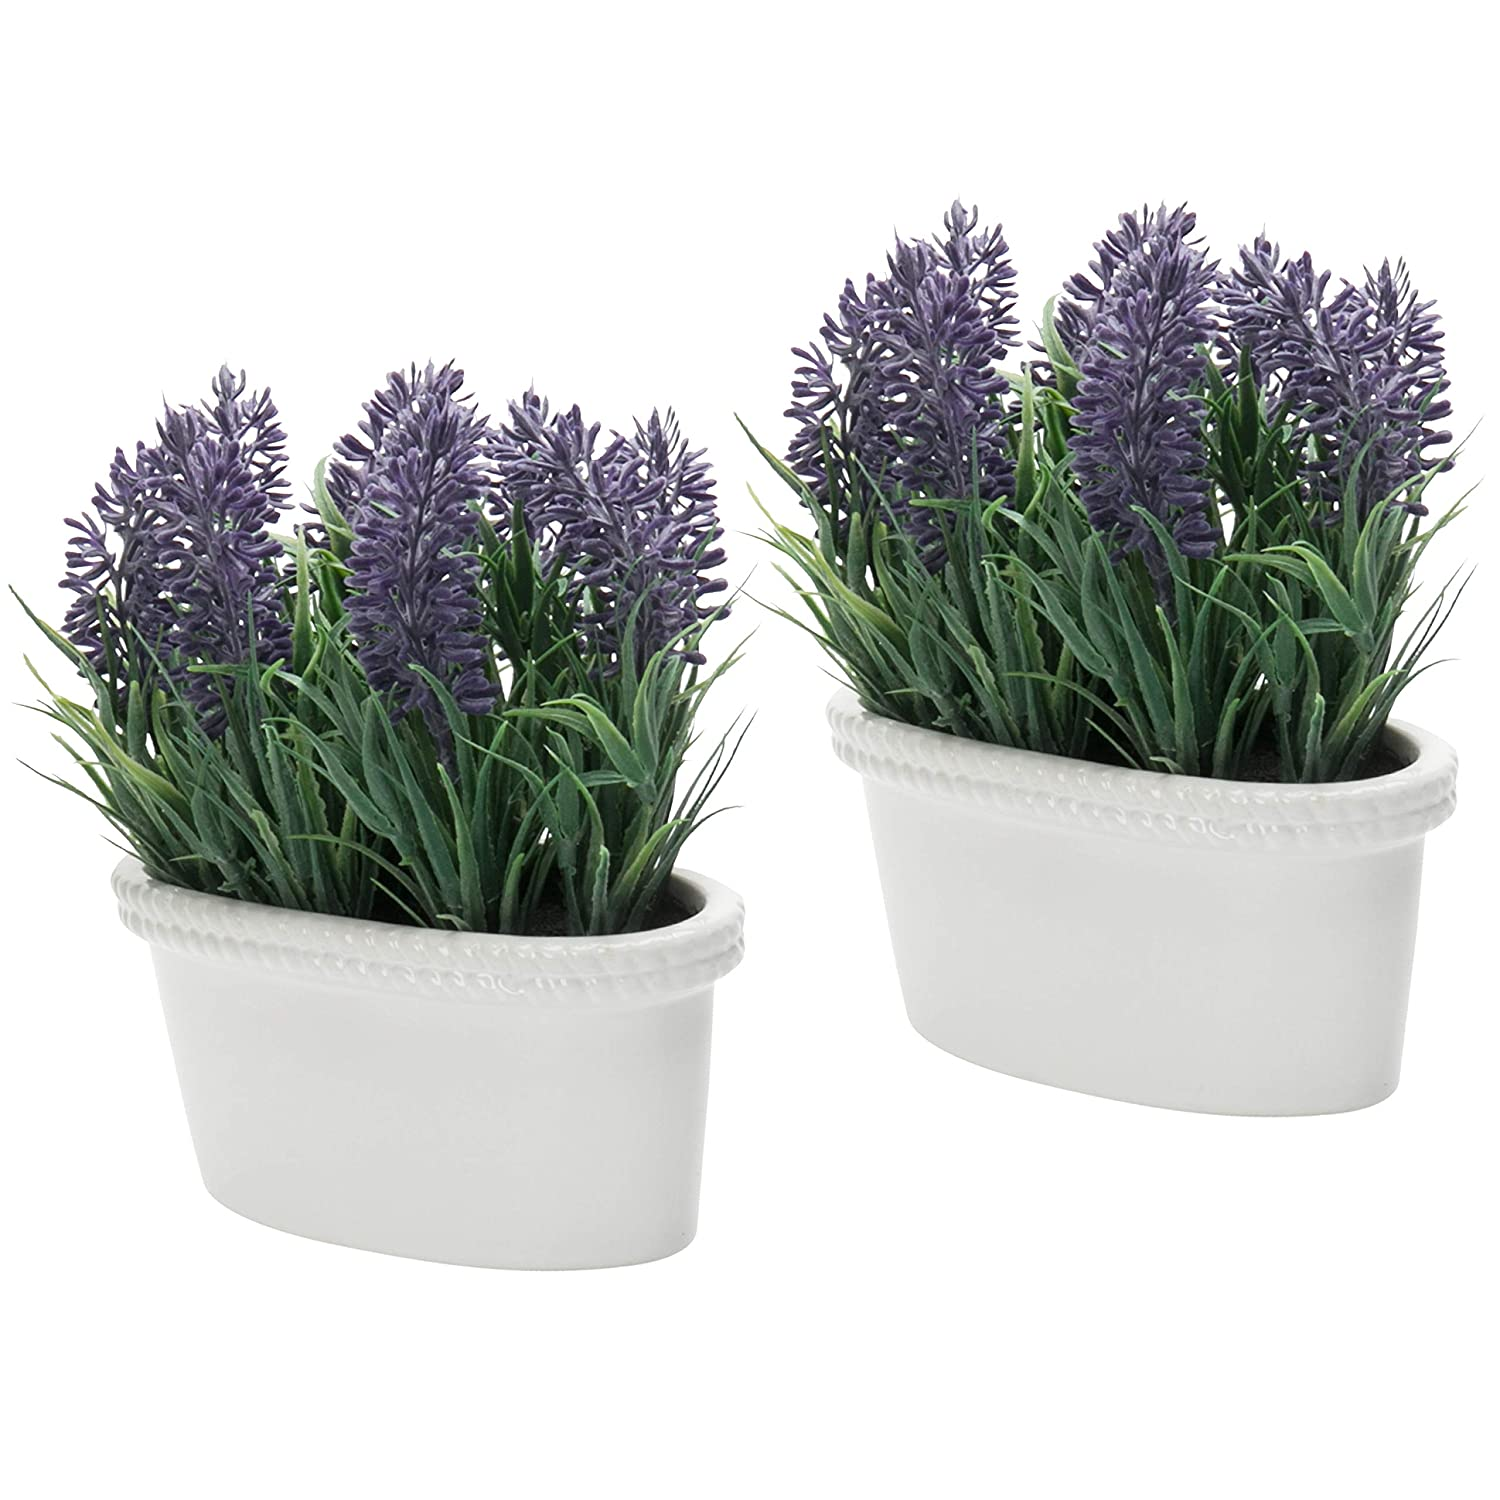 O4 HG Global BS51525PS Table Decor Ideal for Vases Weddings Parties Hosleys Moss Balls Vase Filler Special Events .7 oz